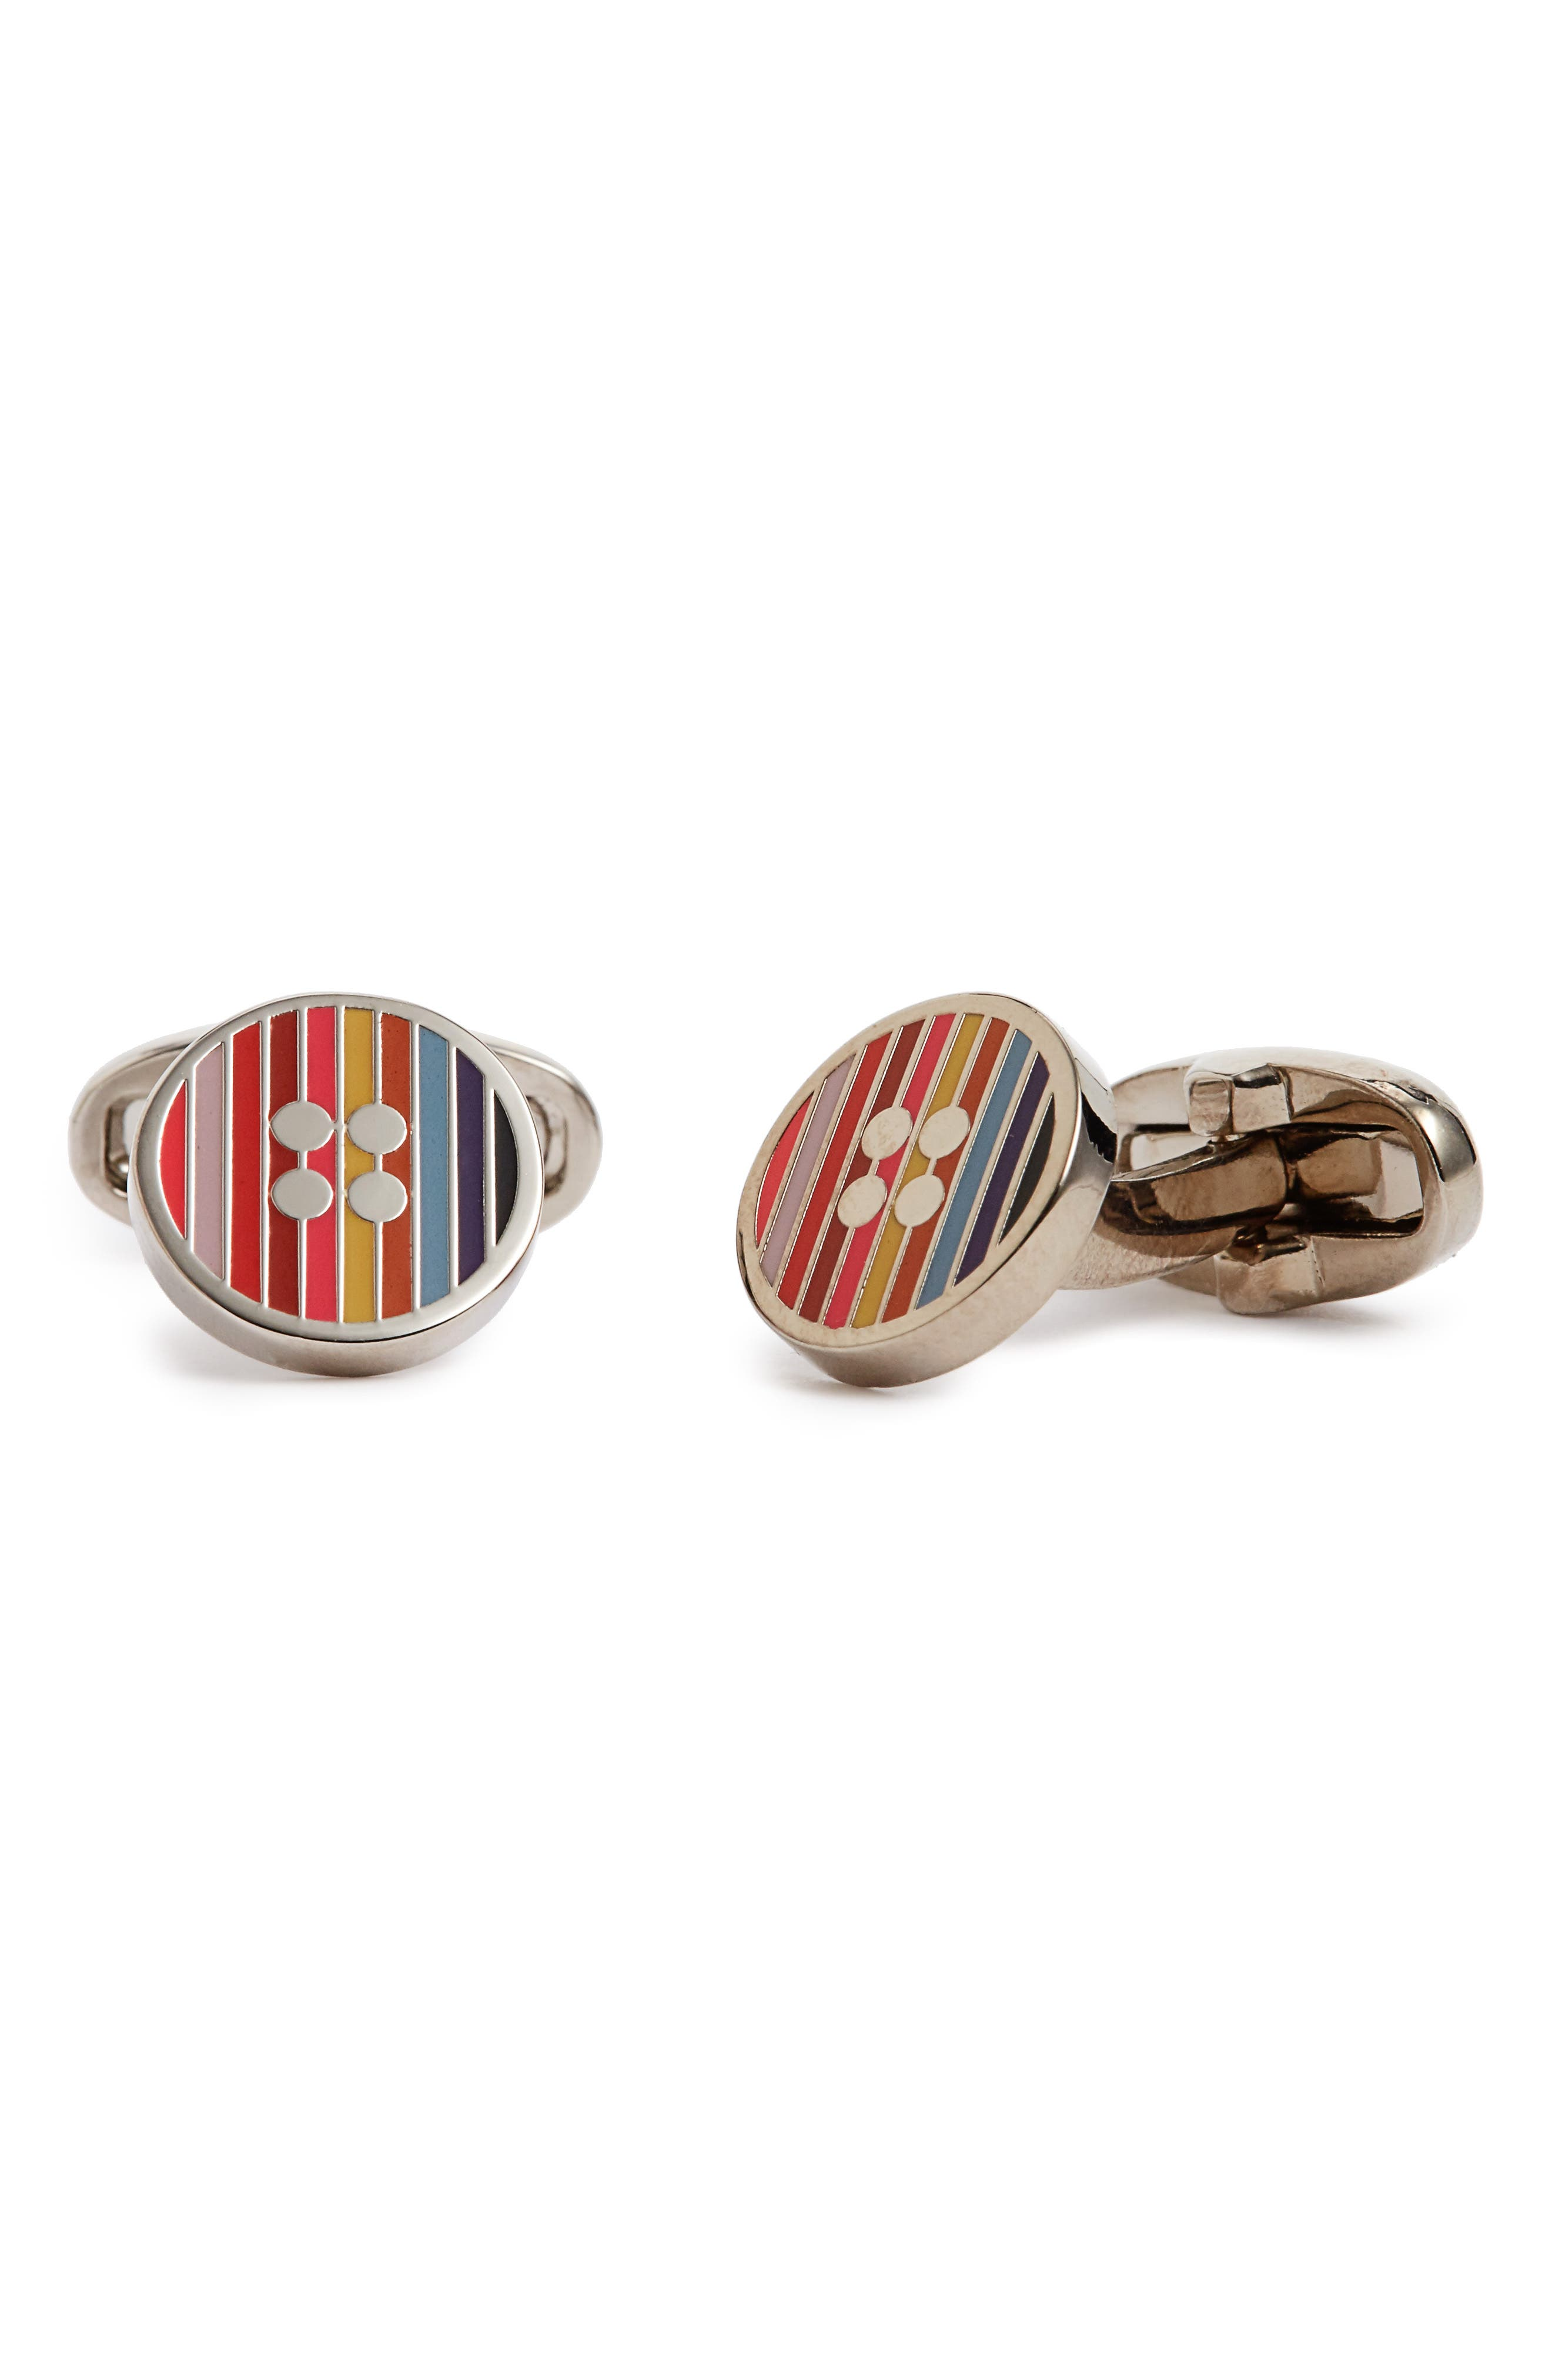 PAUL SMITH Stripe Button Cuff Links